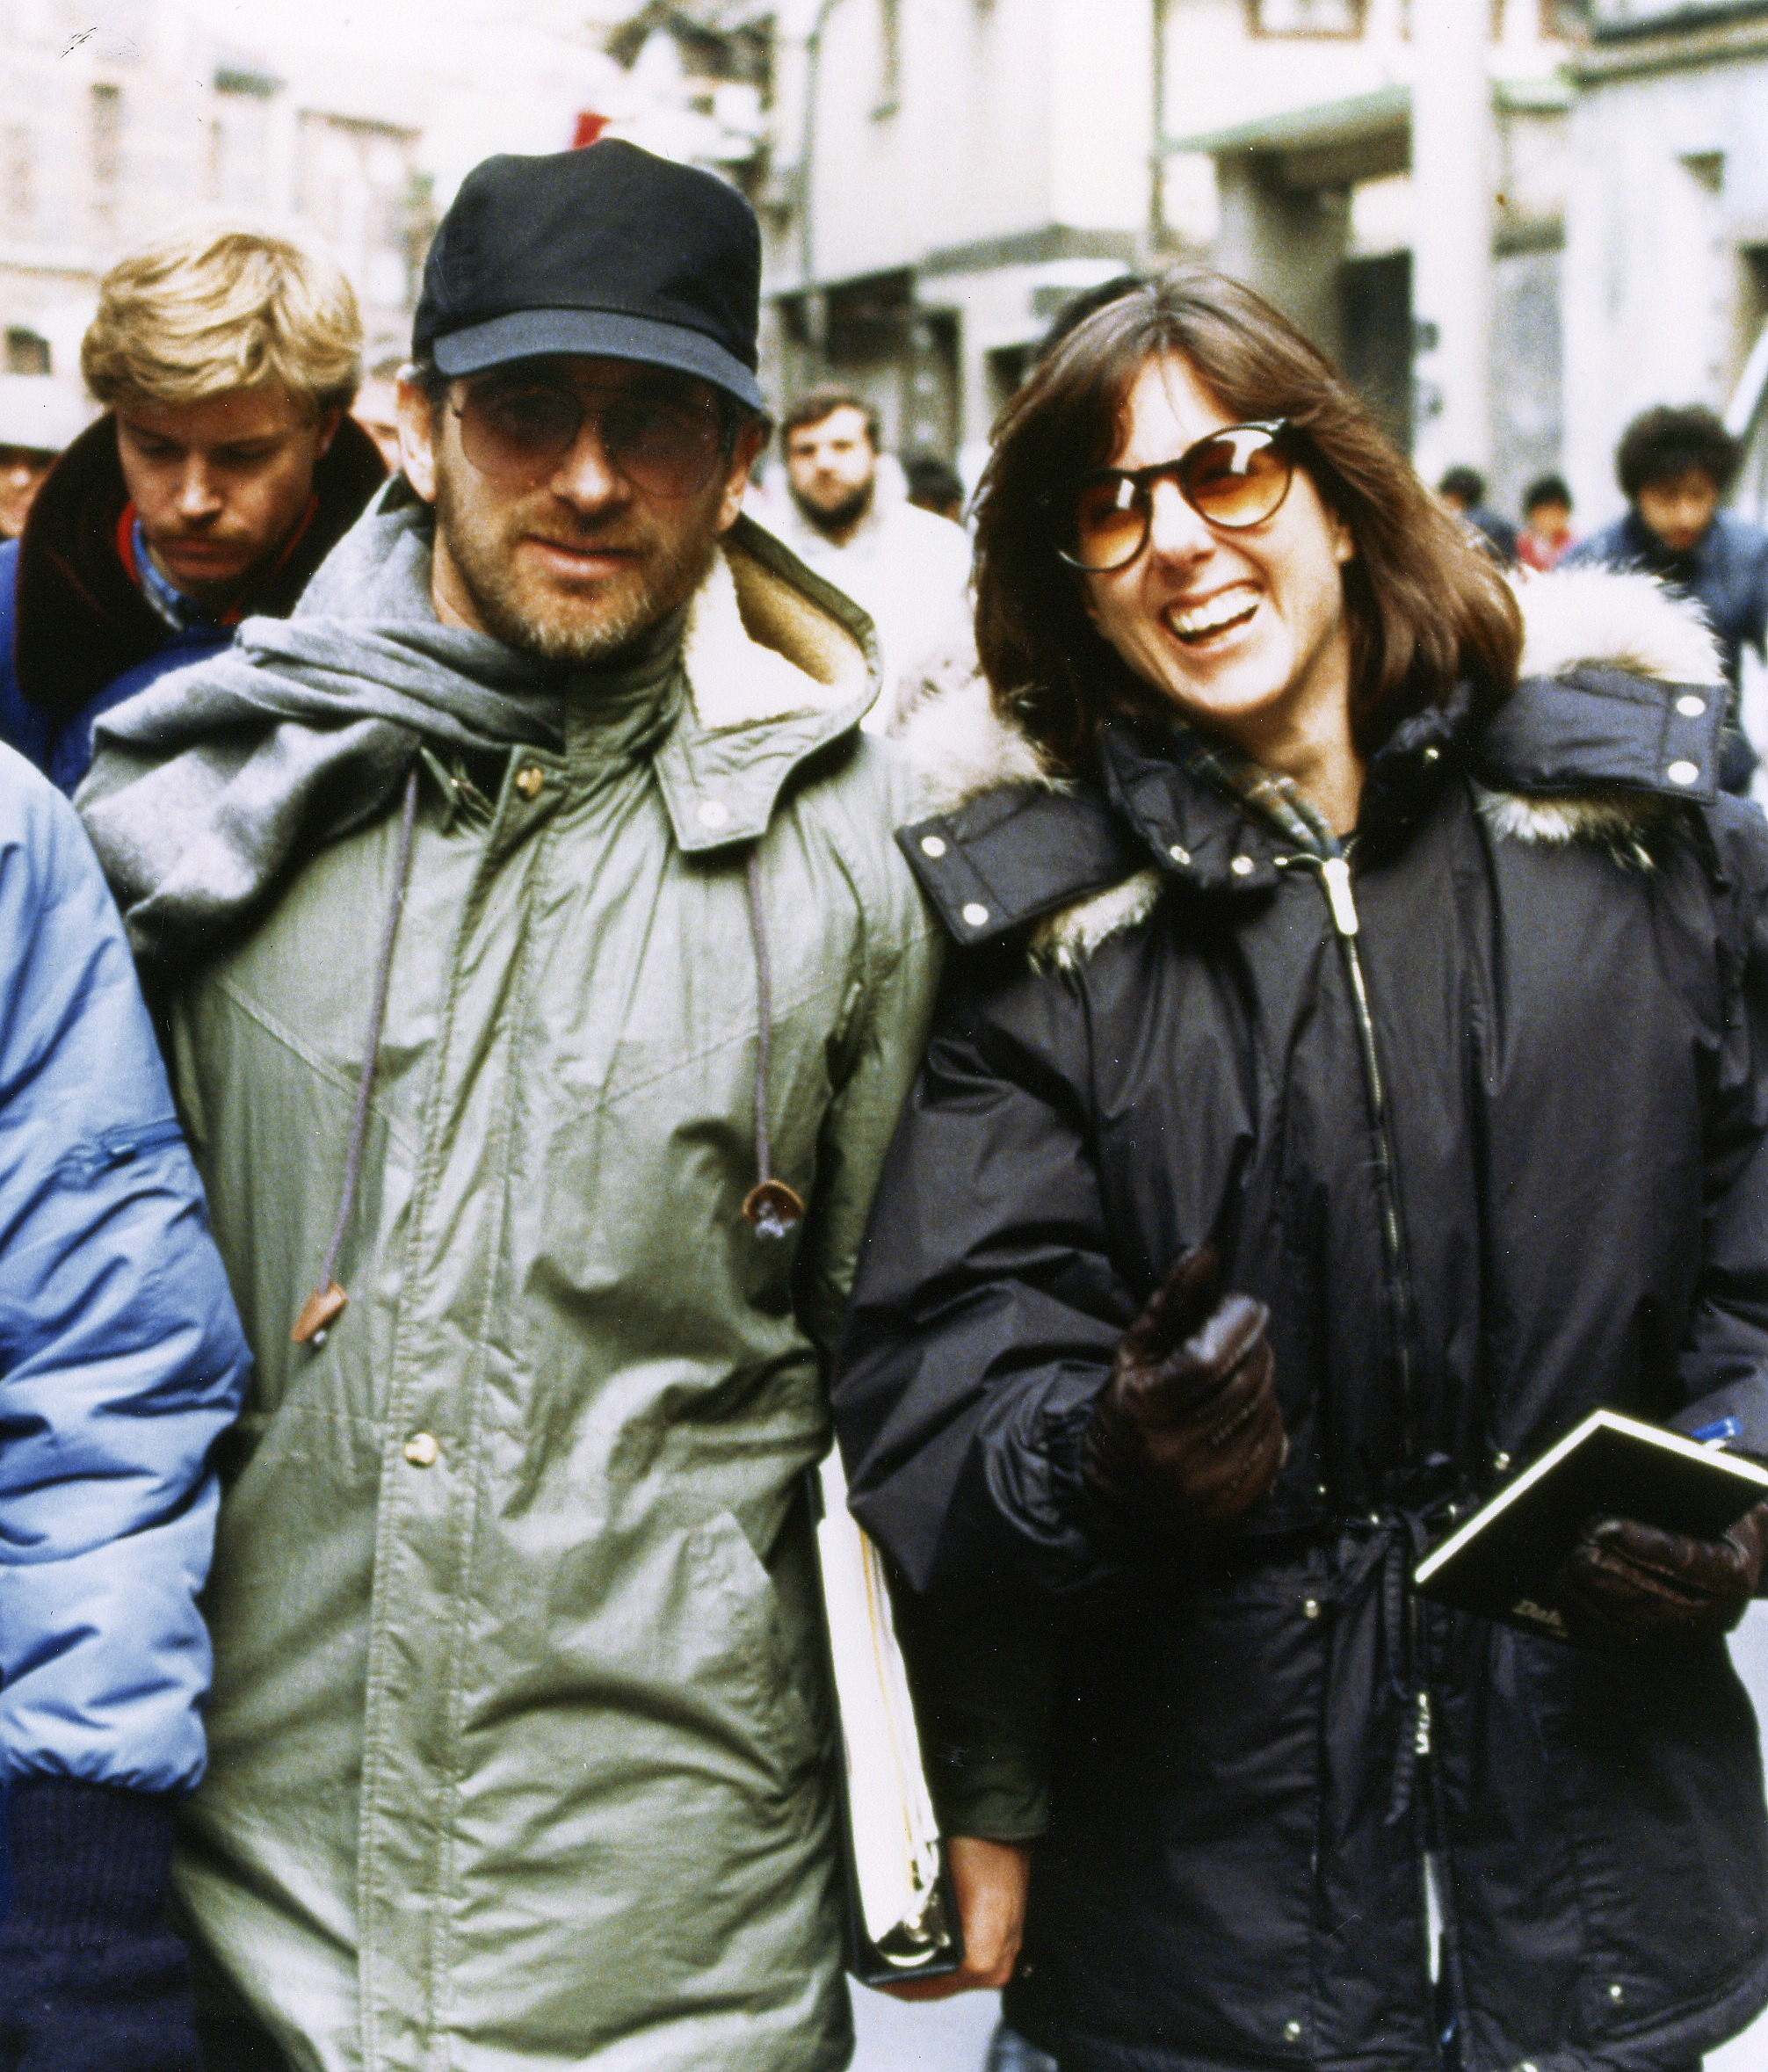 Kennedy with Steven Spielberg during the filming of Empire of the Sun.